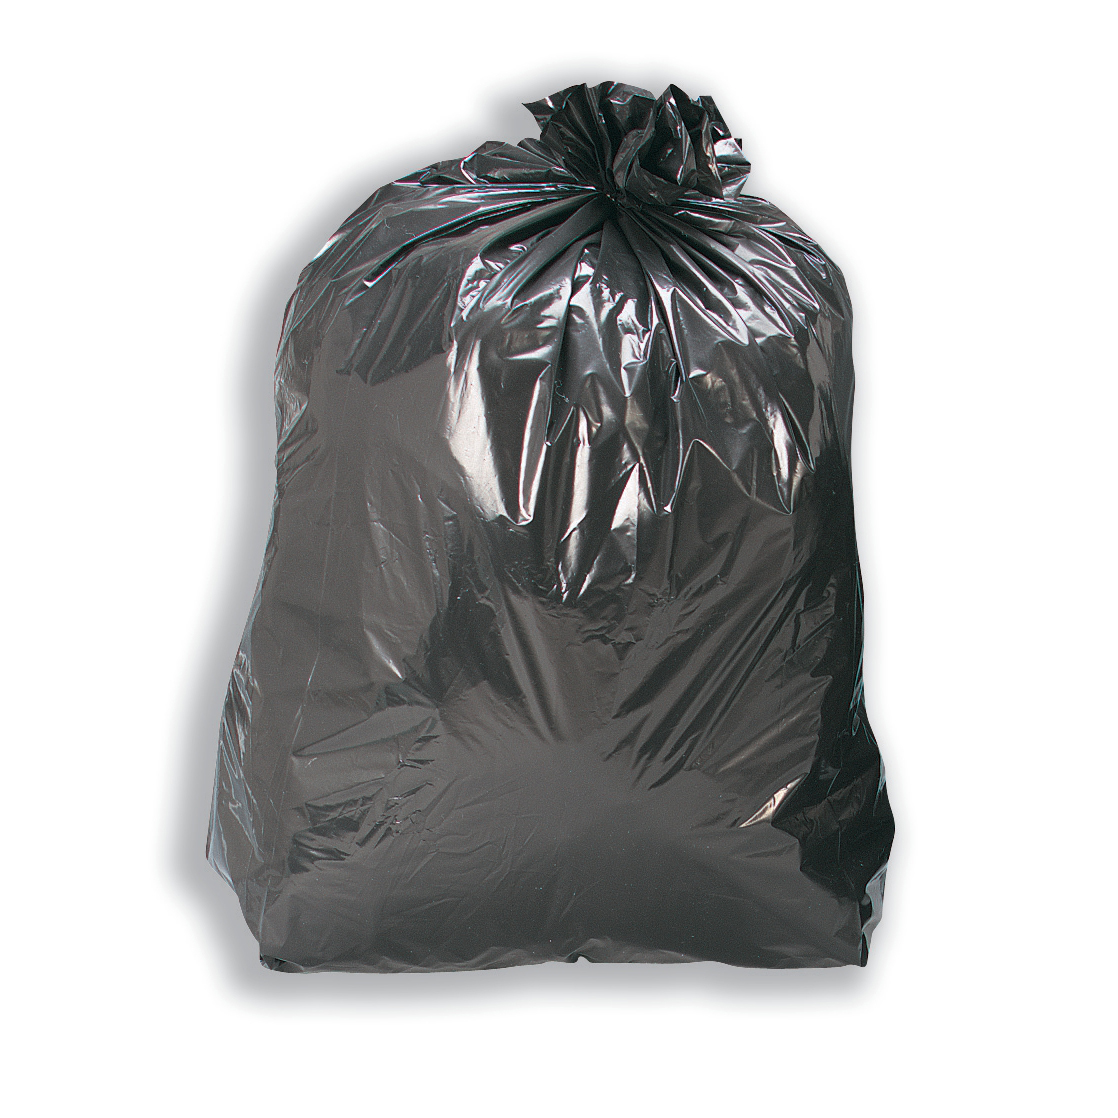 5 Star Facilities Bin Liners Medium/Heavy Duty 110 Litre Capacity W450/690xH945mm Black Pack 200